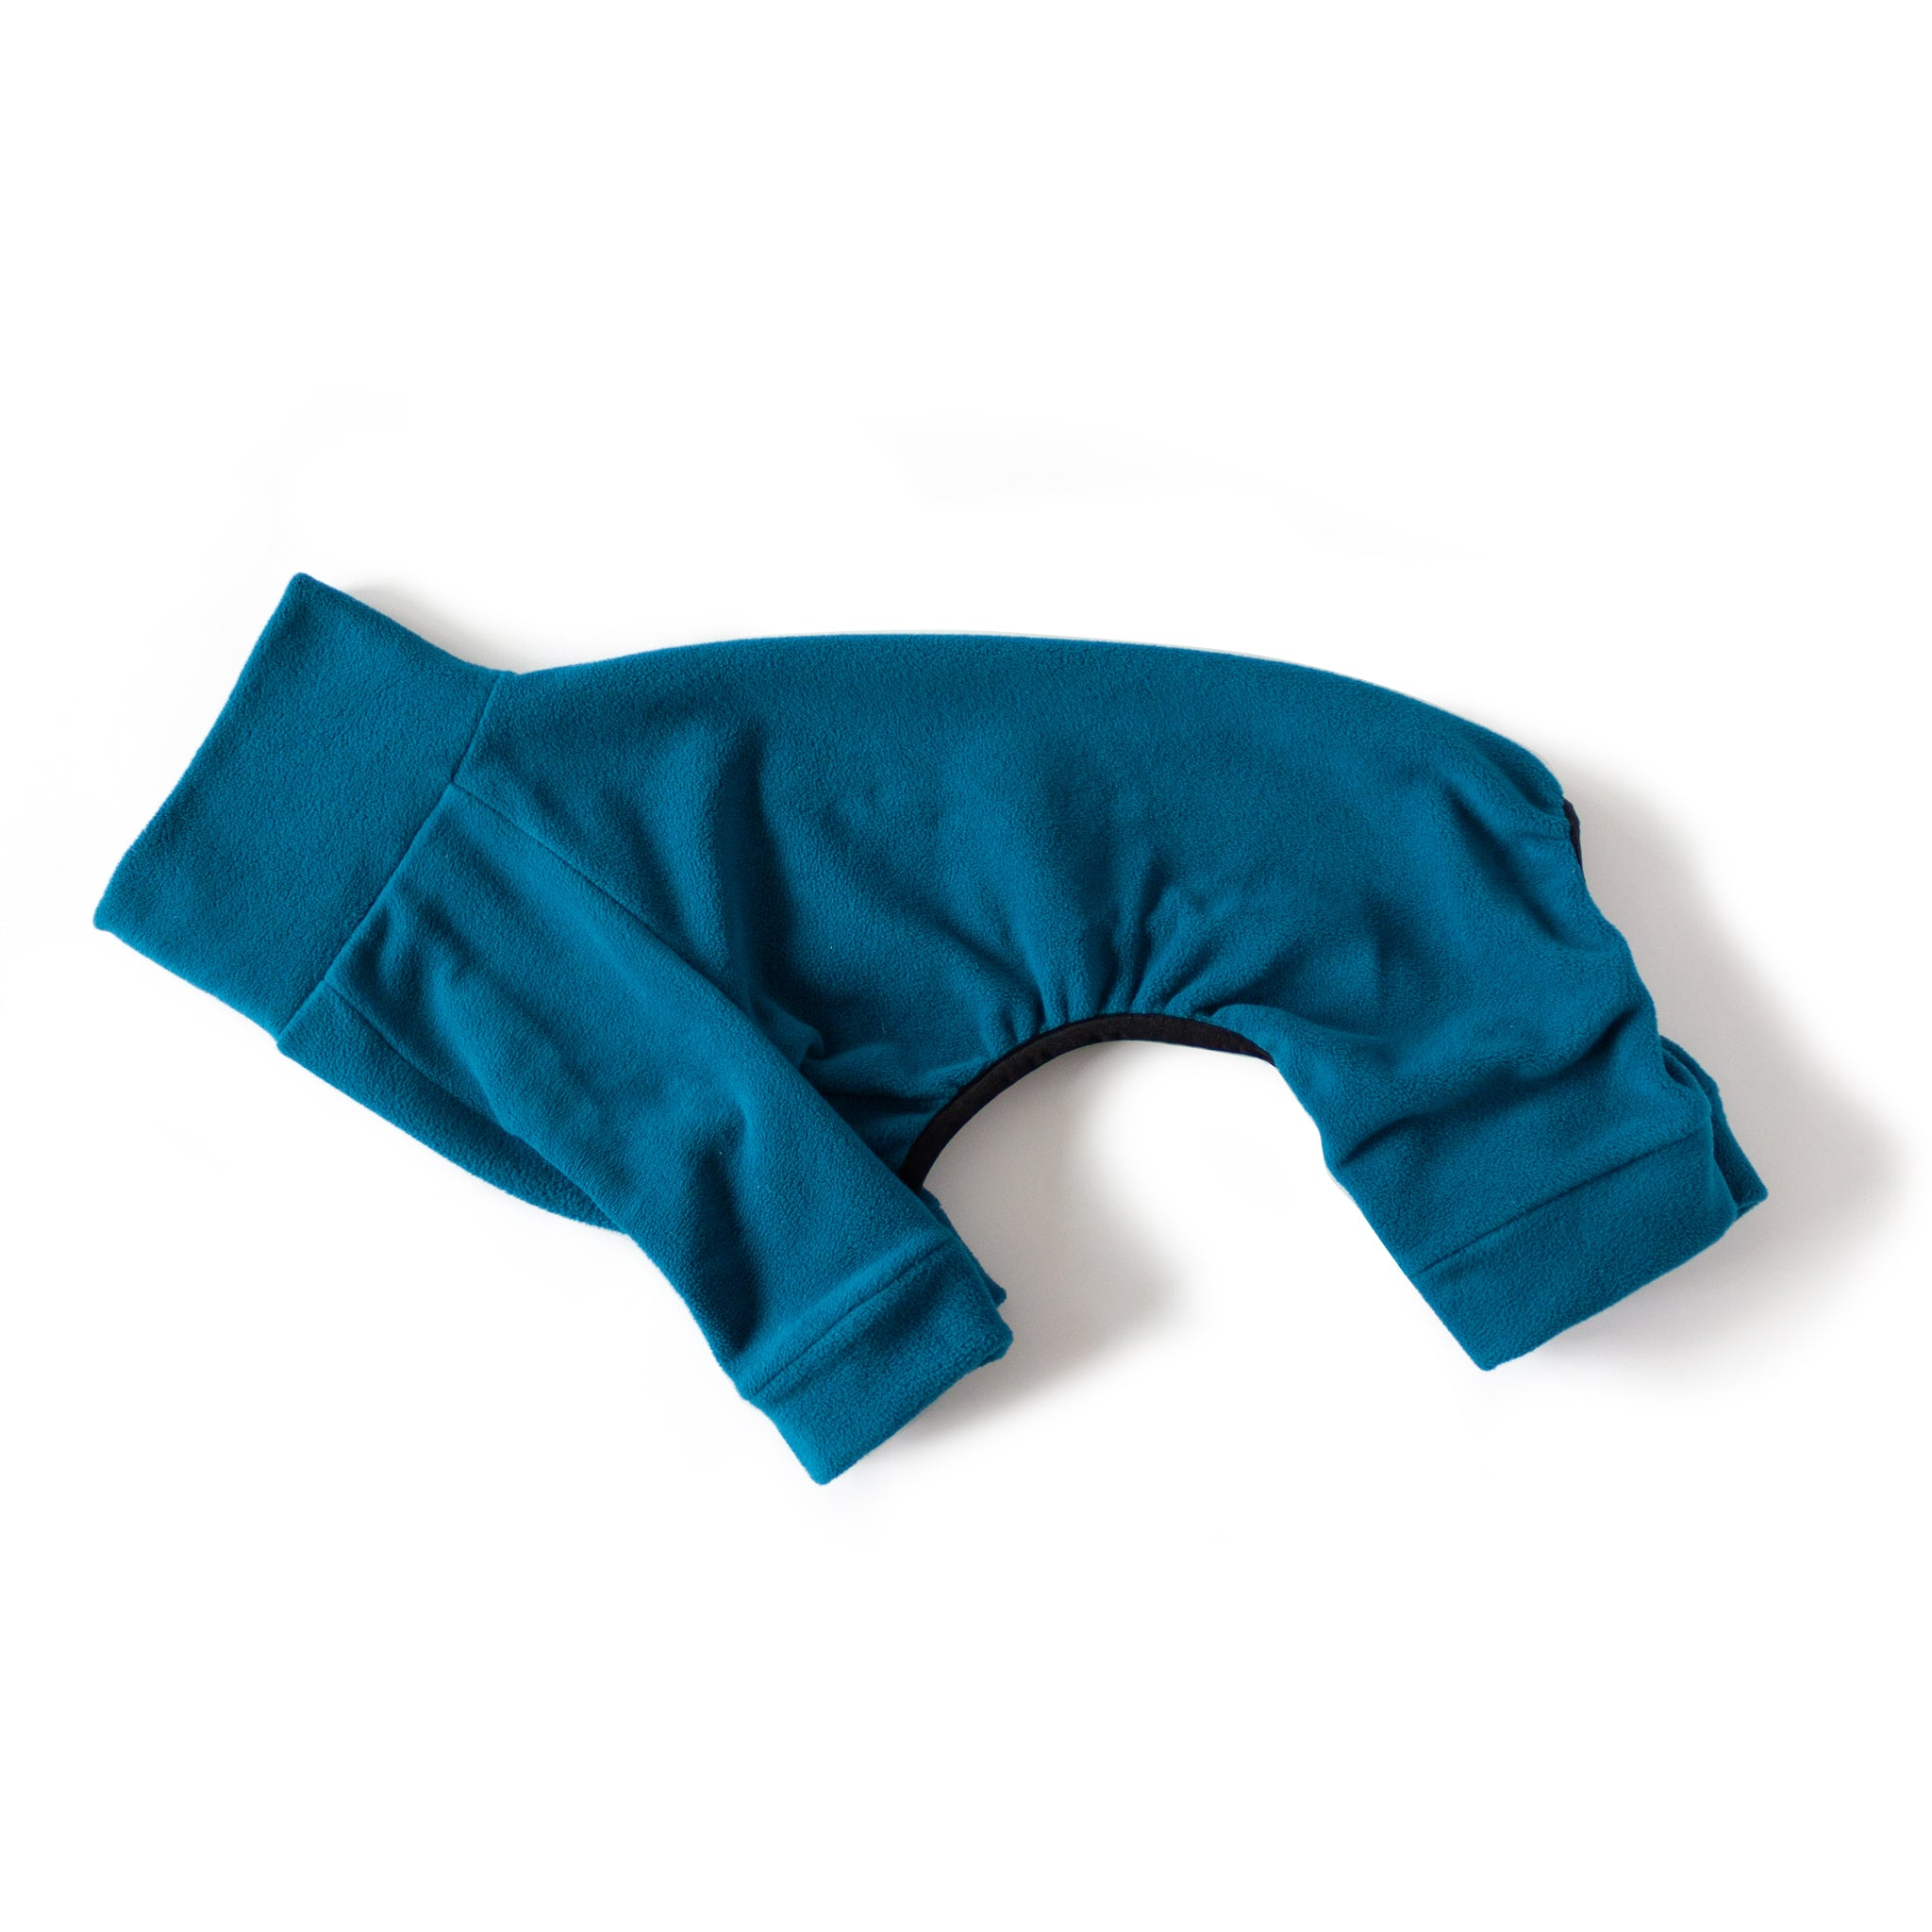 fleece dog pajamas in teal turquois